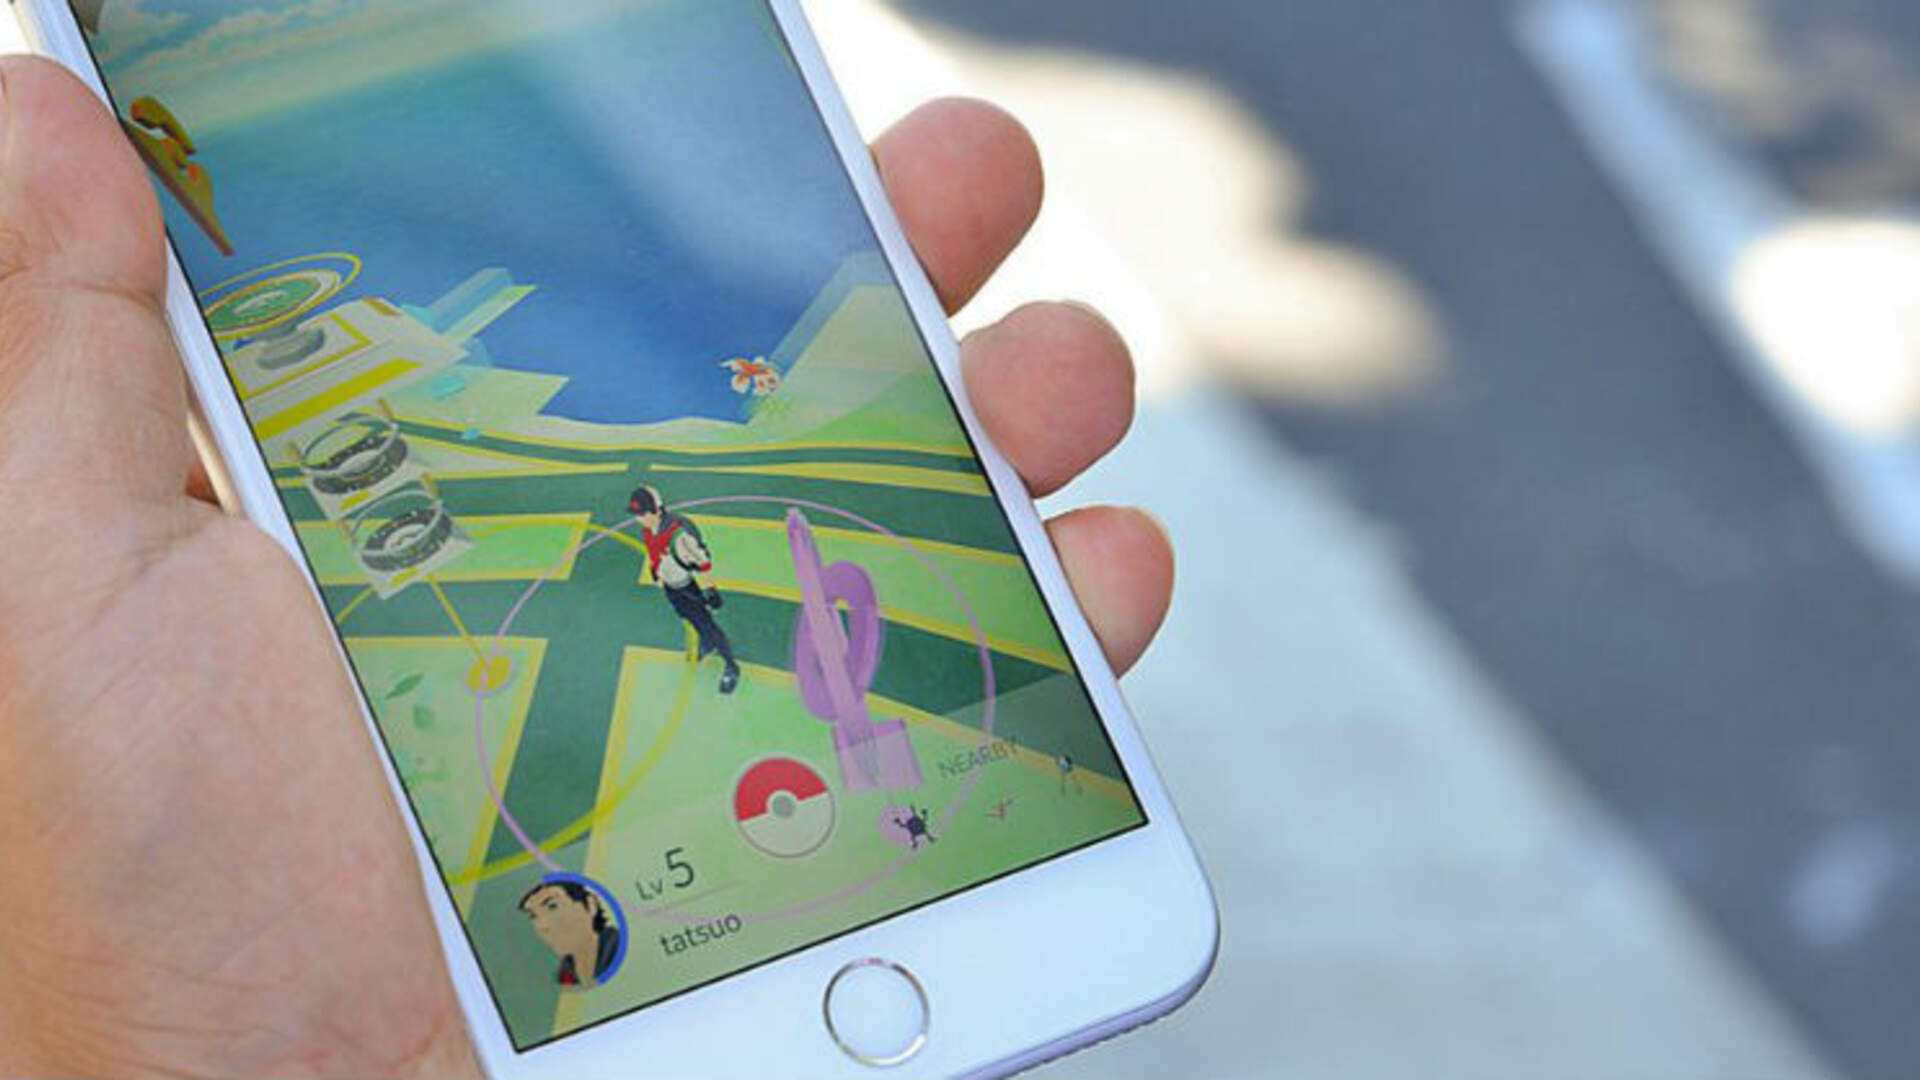 Pokémon Go: Buddy Candy Distances - How Far Do I Have to Walk For Buddy Pokemon to Drop Items